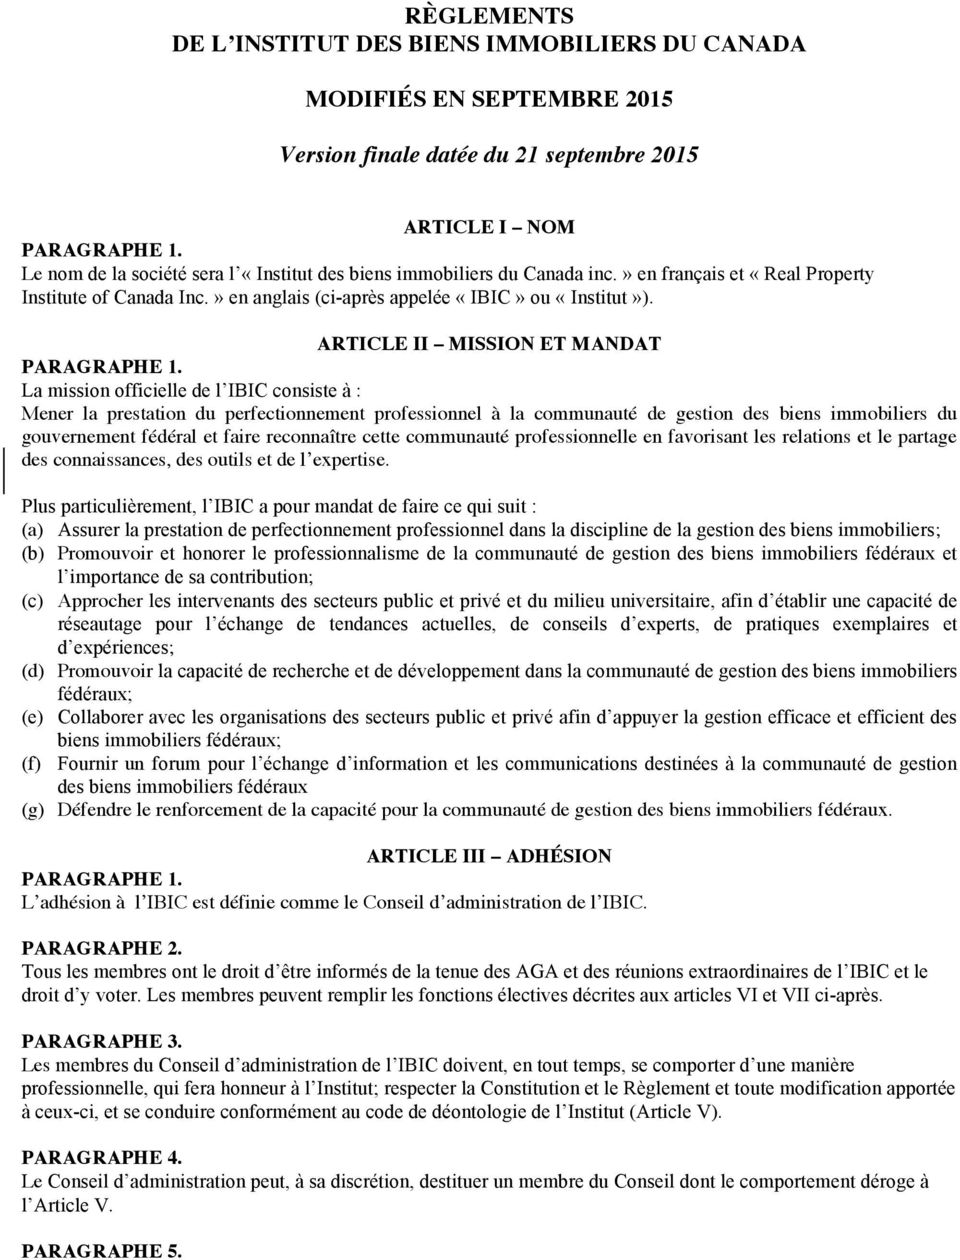 ARTICLE II MISSION ET MANDAT La mission officielle de l IBIC consiste à : Mener la prestation du perfectionnement professionnel à la communauté de gestion des biens immobiliers du gouvernement